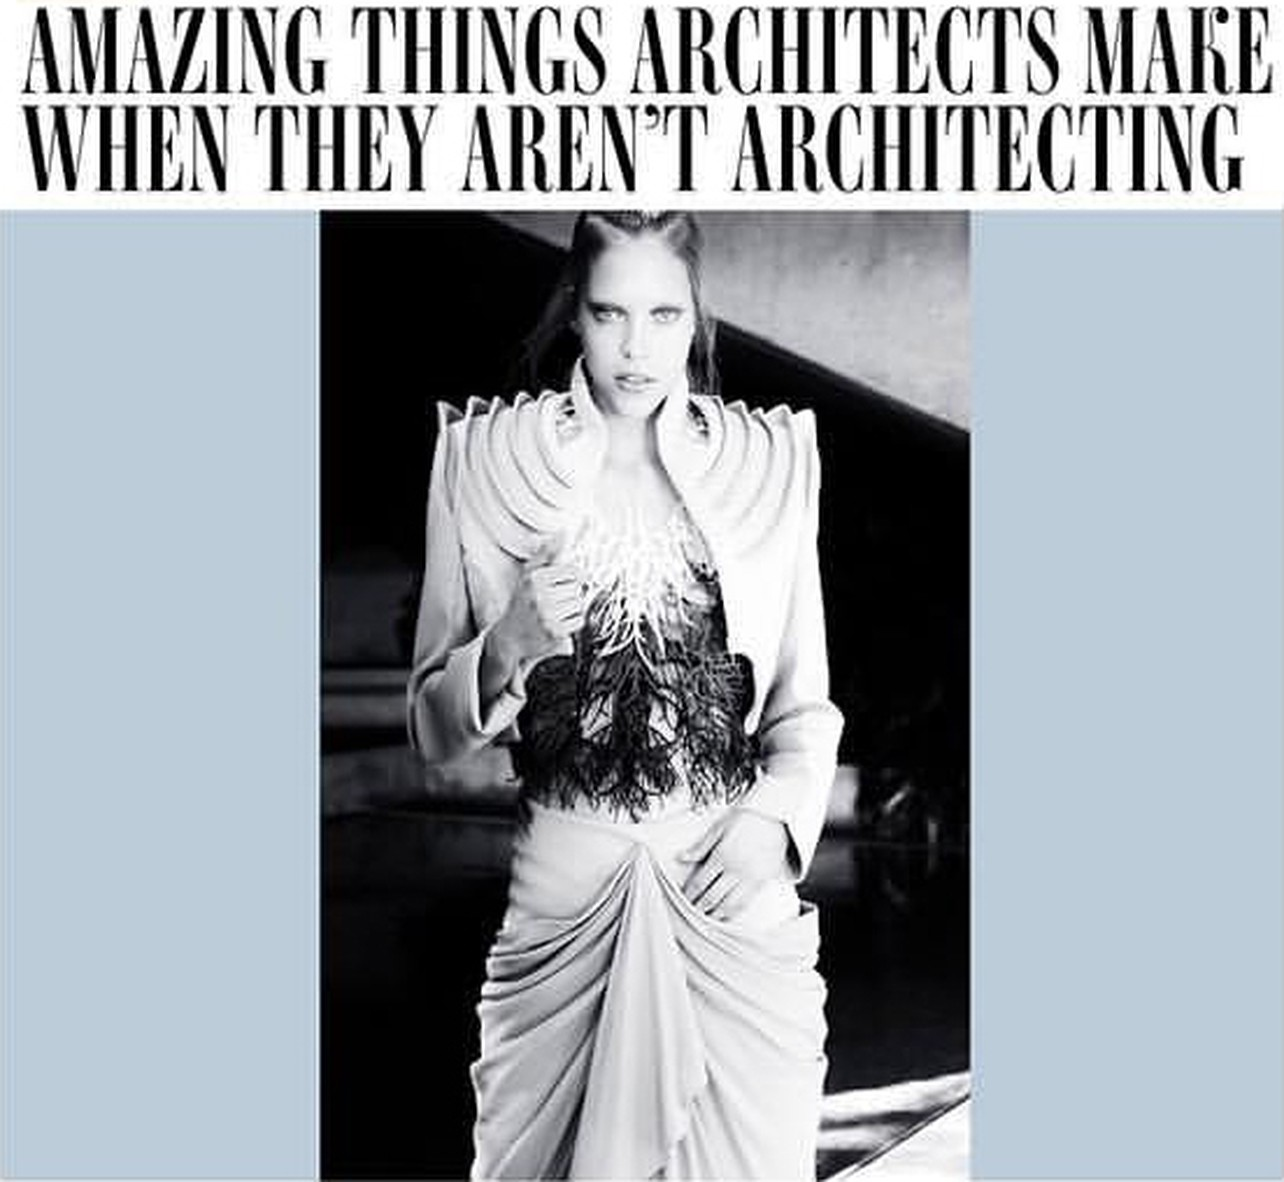 Amazing Things Architects Make When They Aren\'t Architecting | News ...